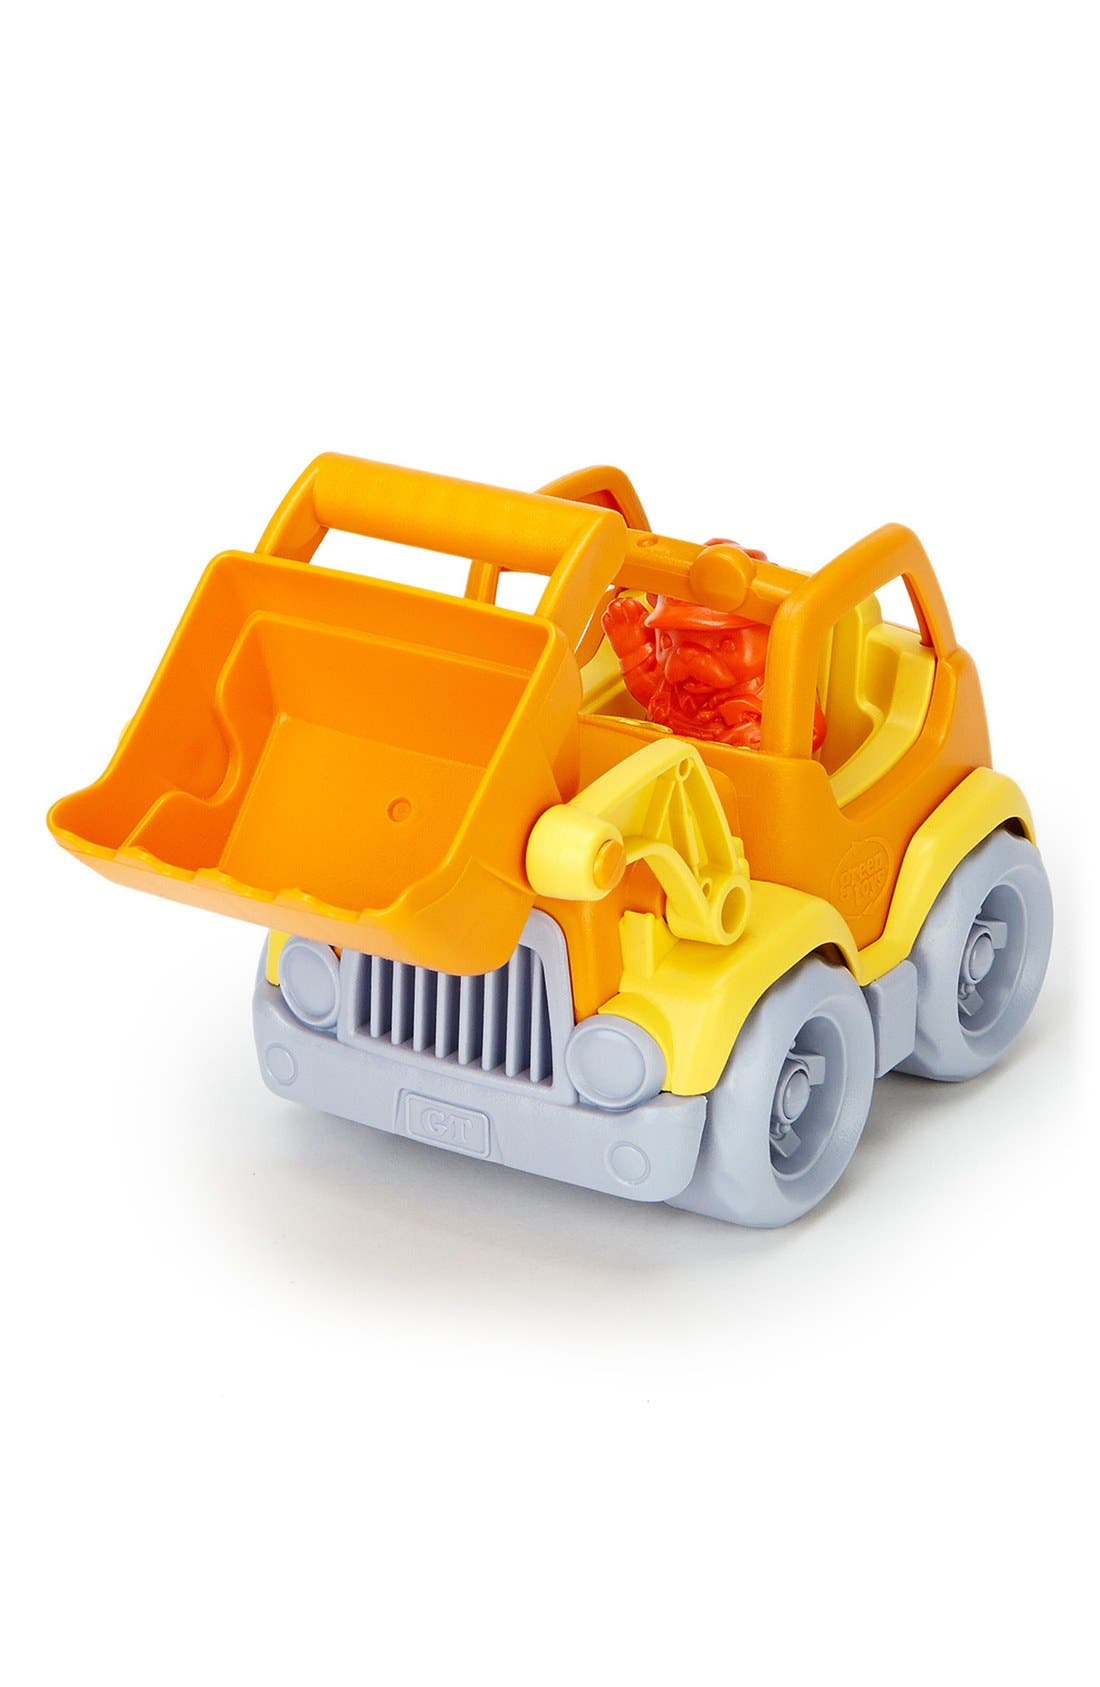 'Scooper' Toy Construction Truck,                             Alternate thumbnail 4, color,                             800